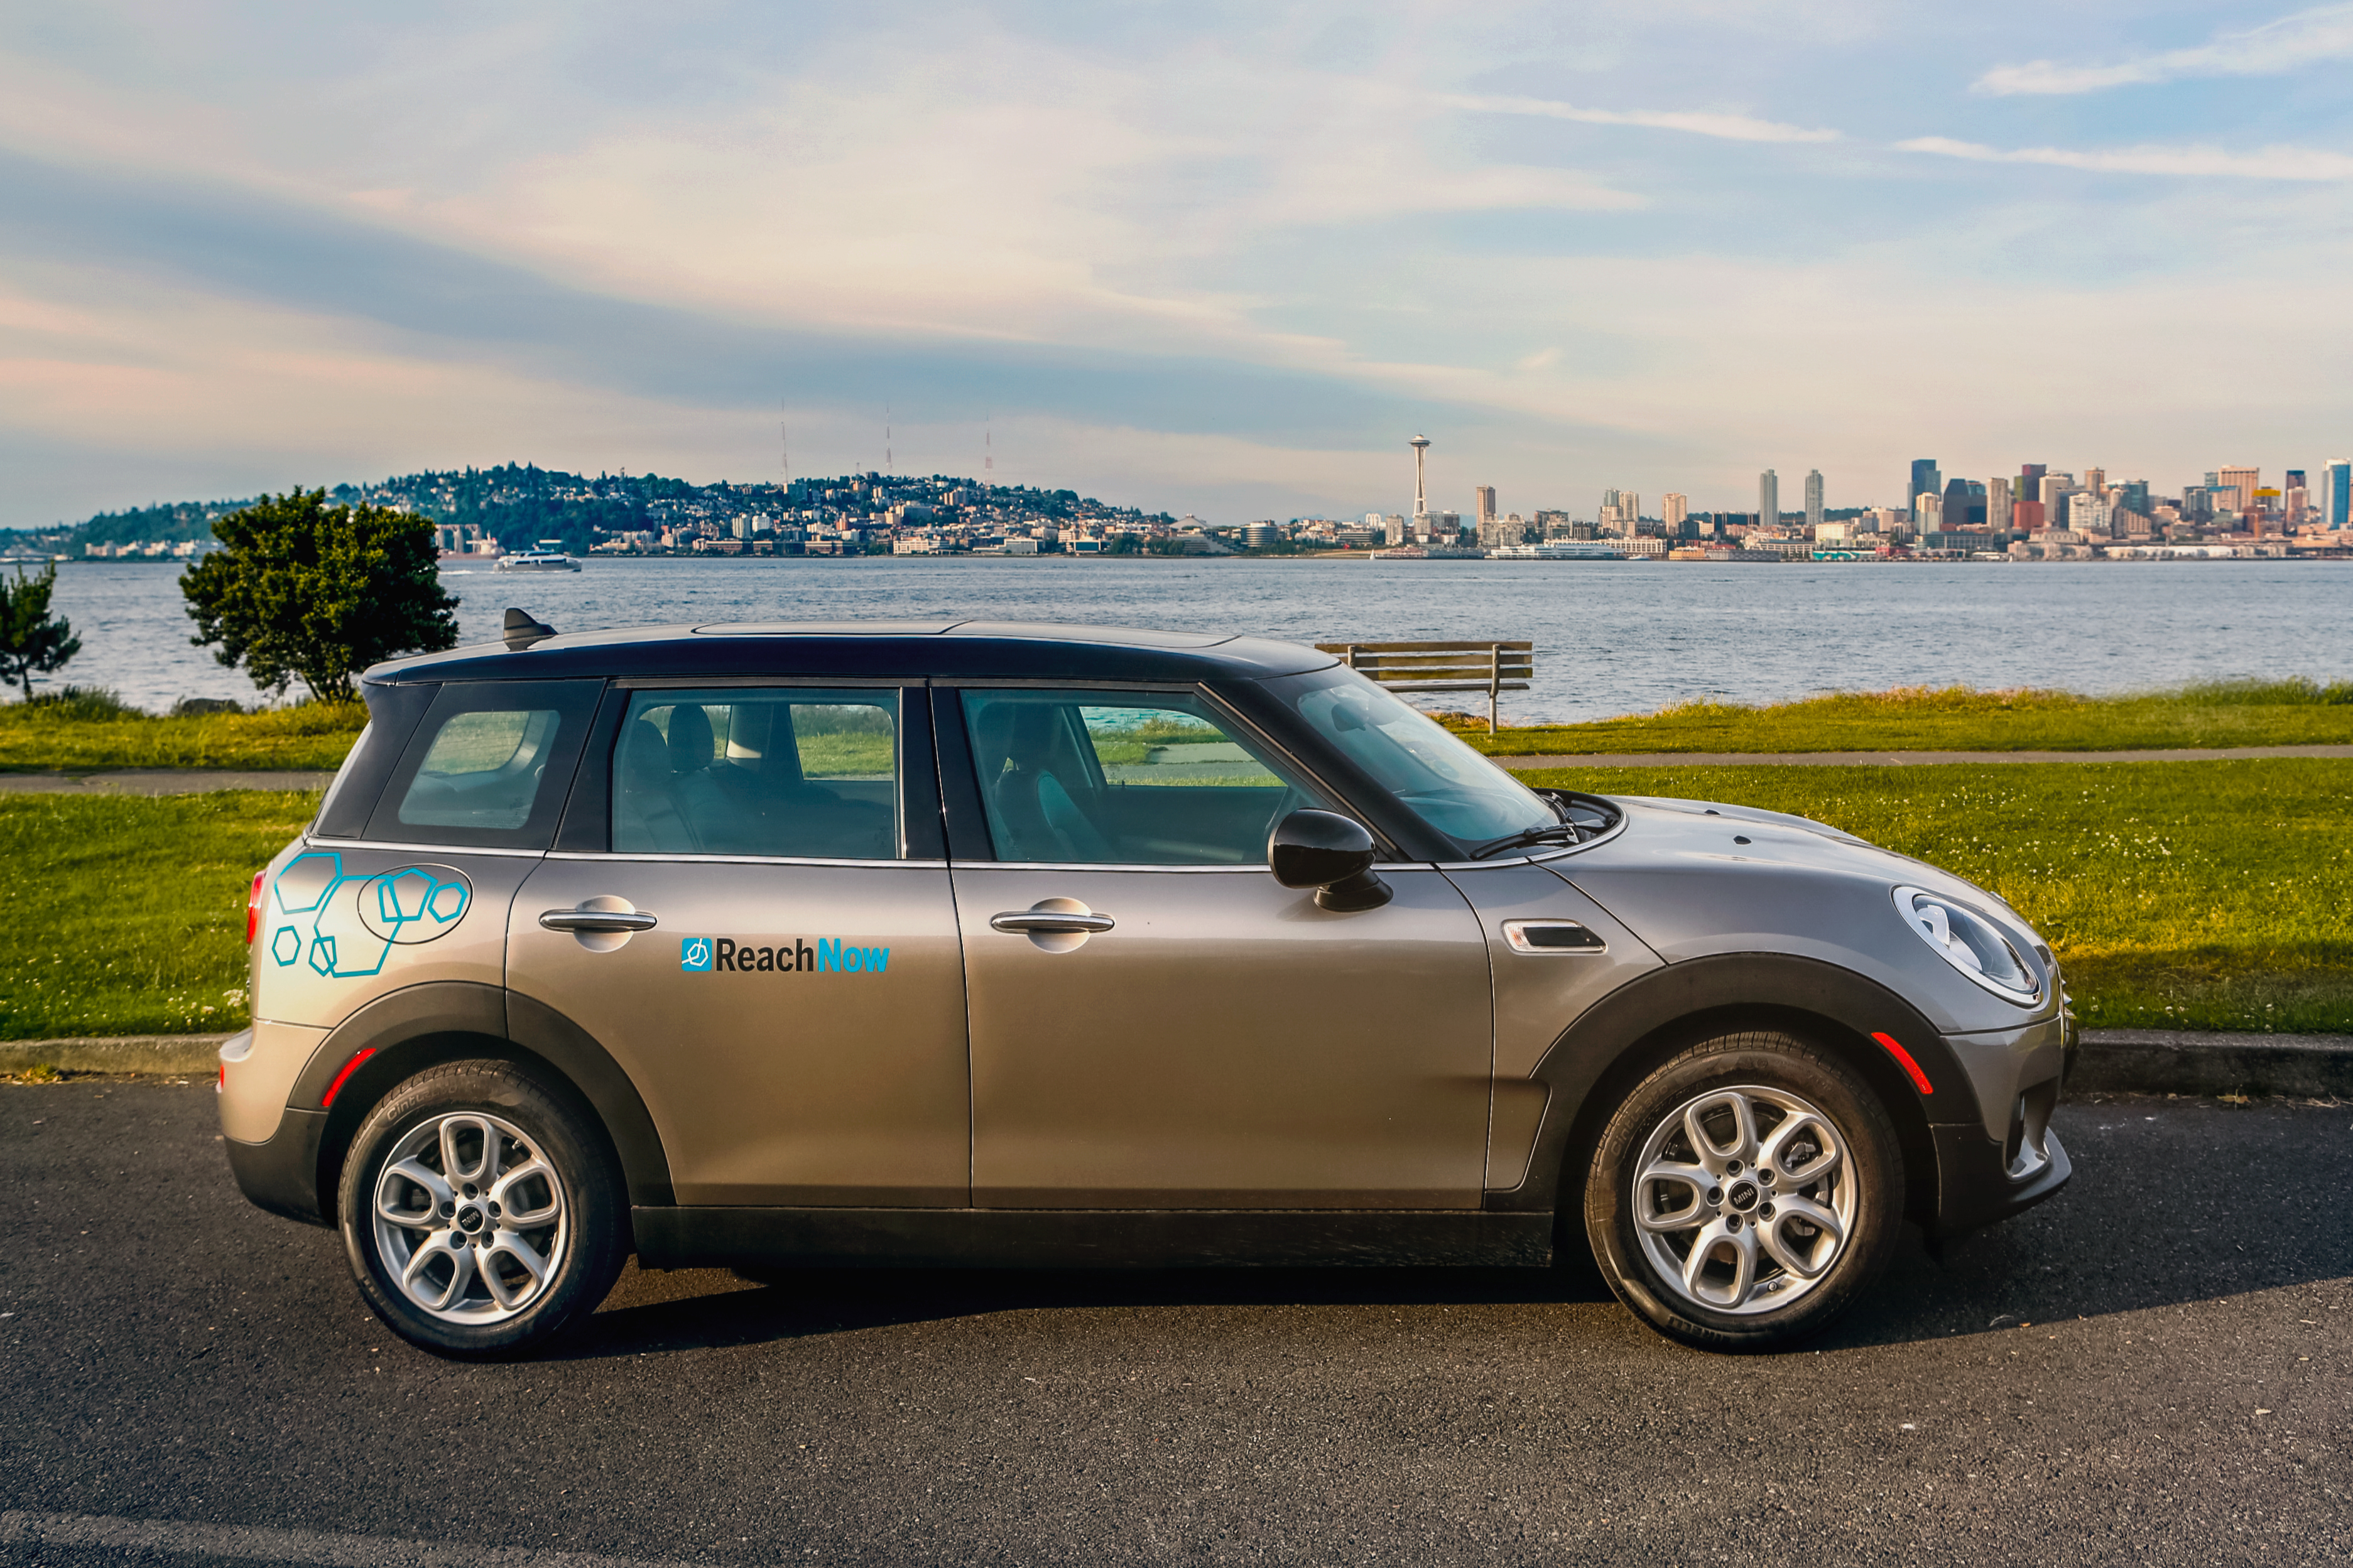 Bmw S Reachnow Car Sharing Service Expands Service Area